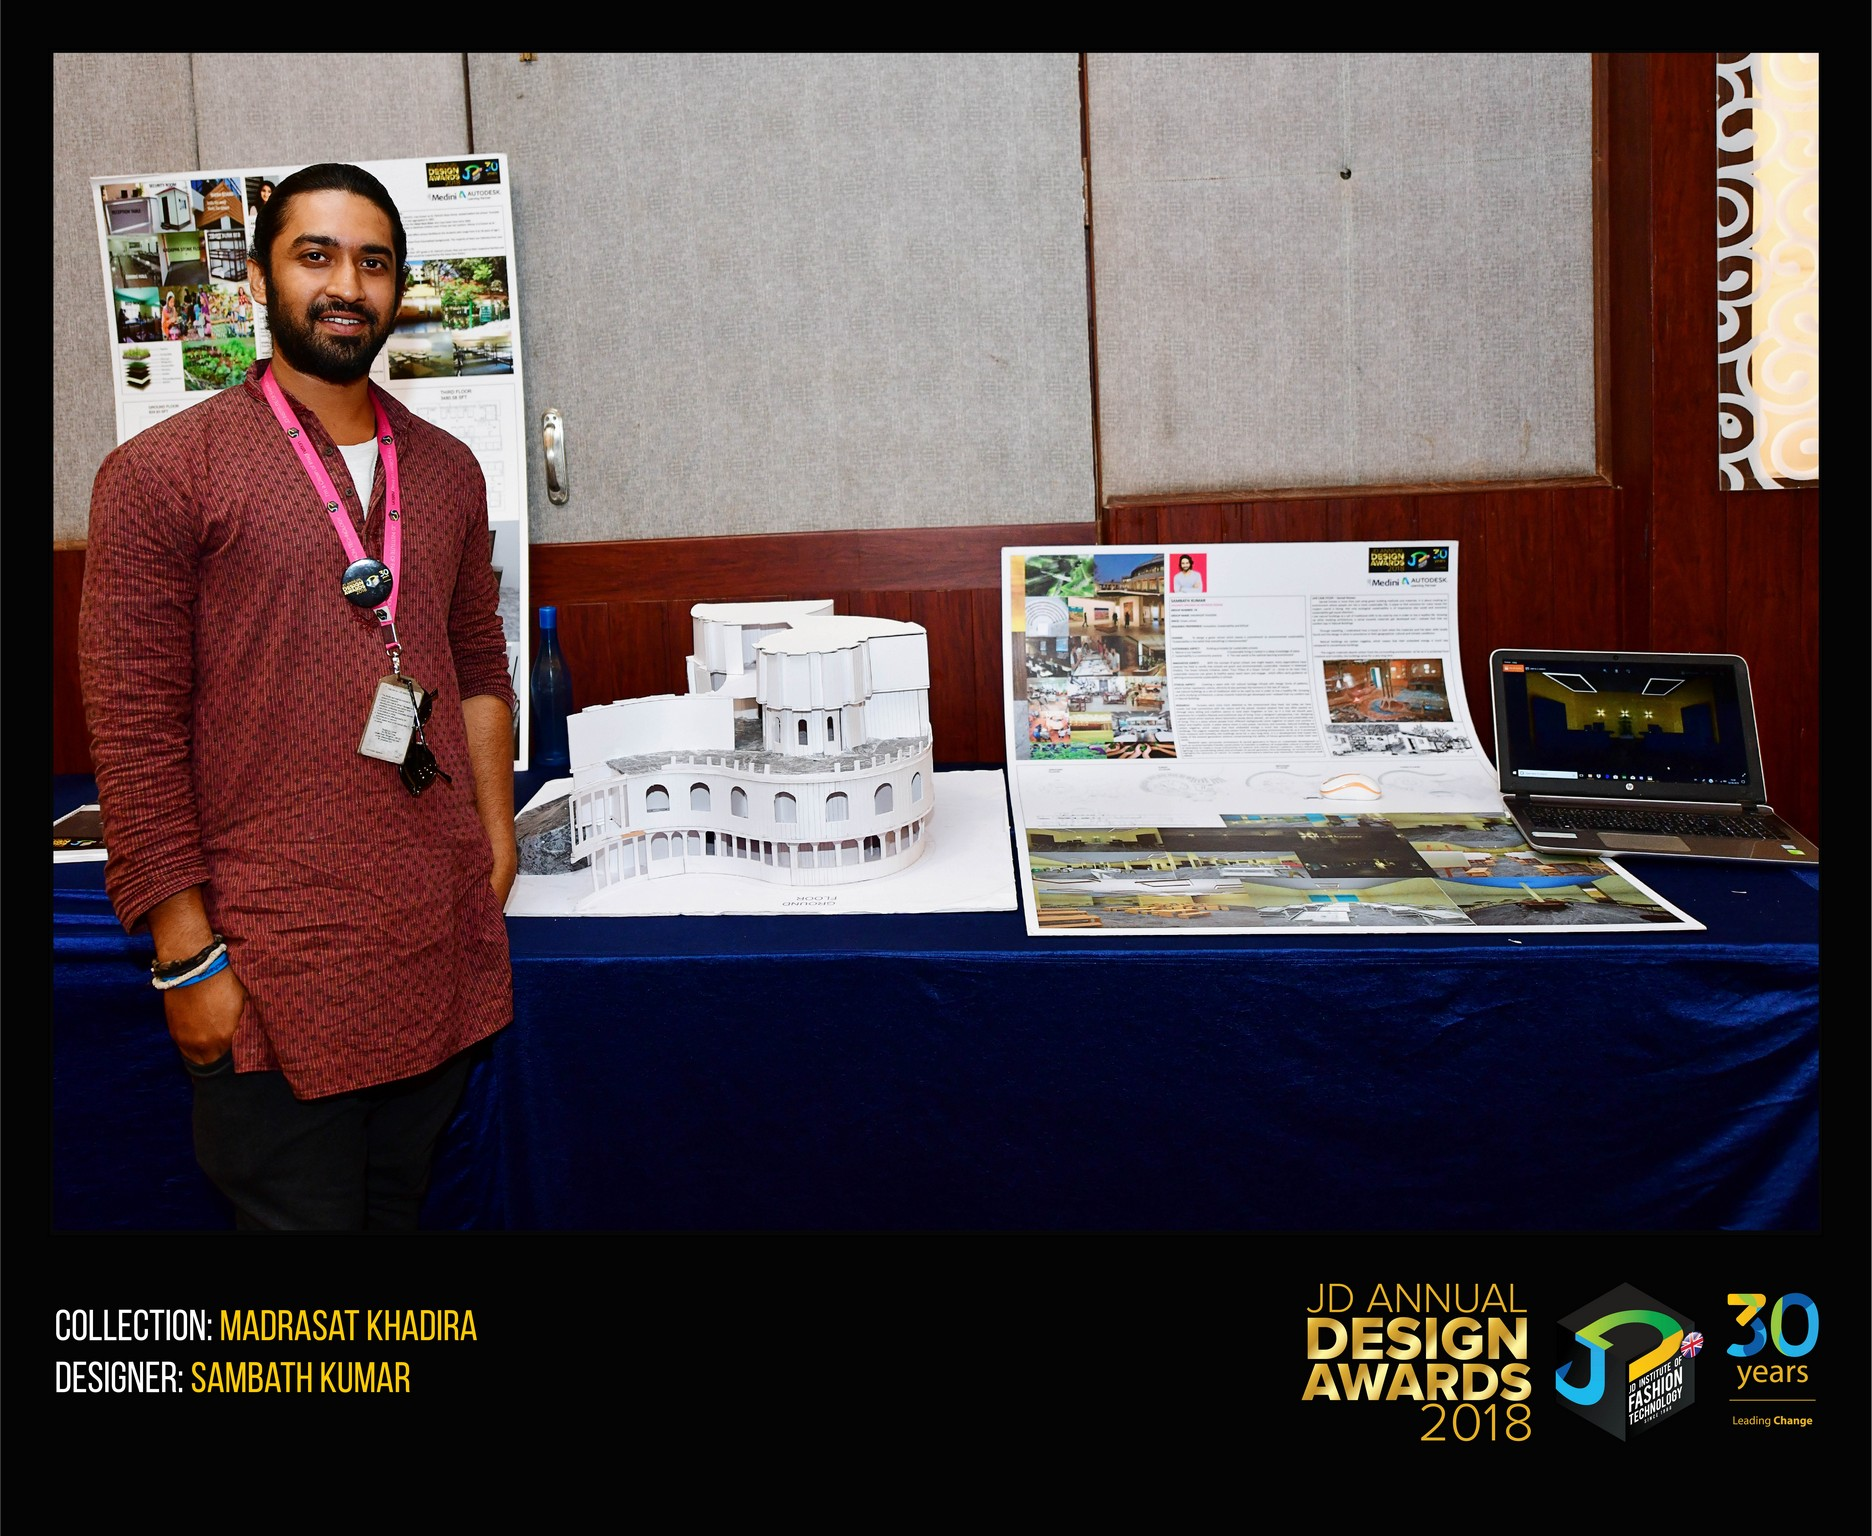 madrasat khadira - Madrasat Khadira - Madrasat Khadira – Change – JD Annual Design Awards 2018